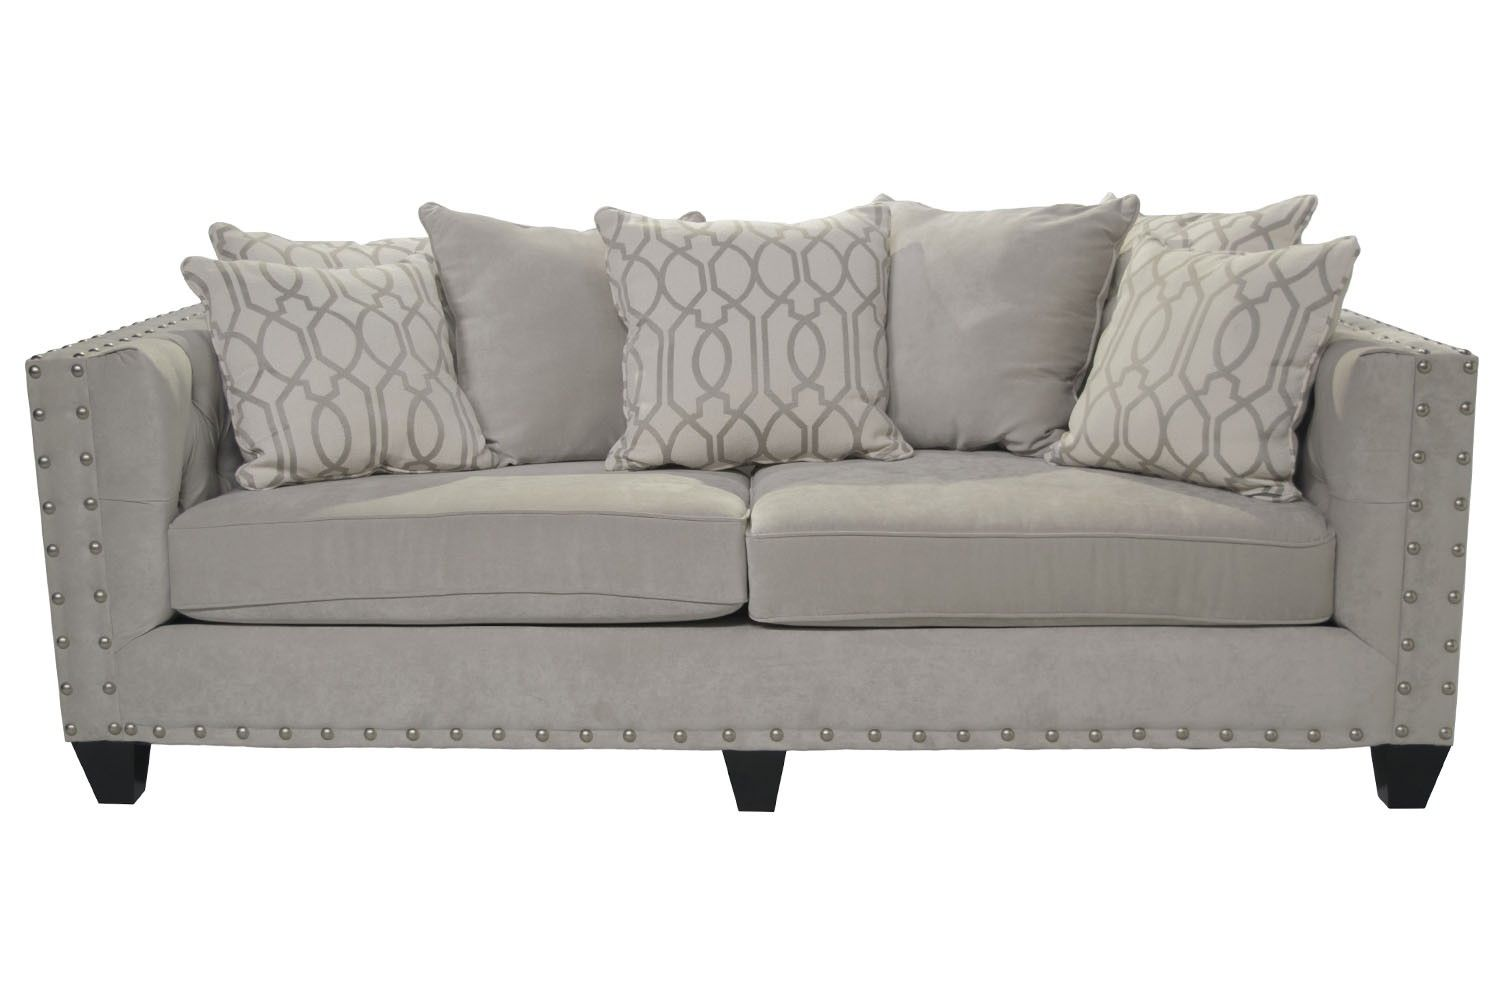 Mor Furniture For Less The Roxanne Sofa